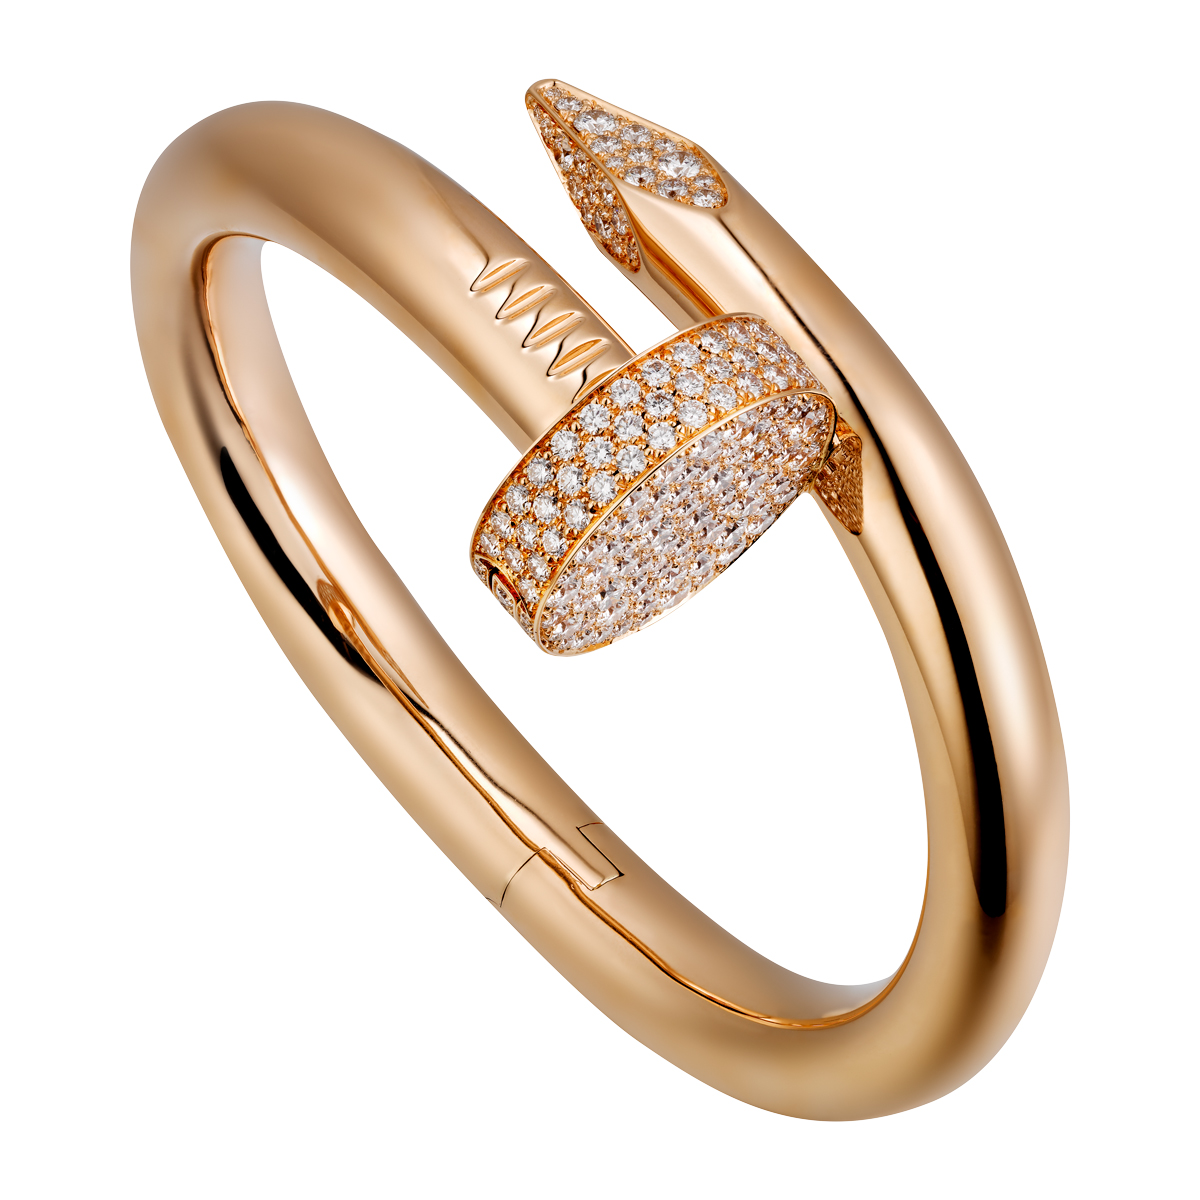 Juste Un Clou - Ring in Roségold mit Diamanten